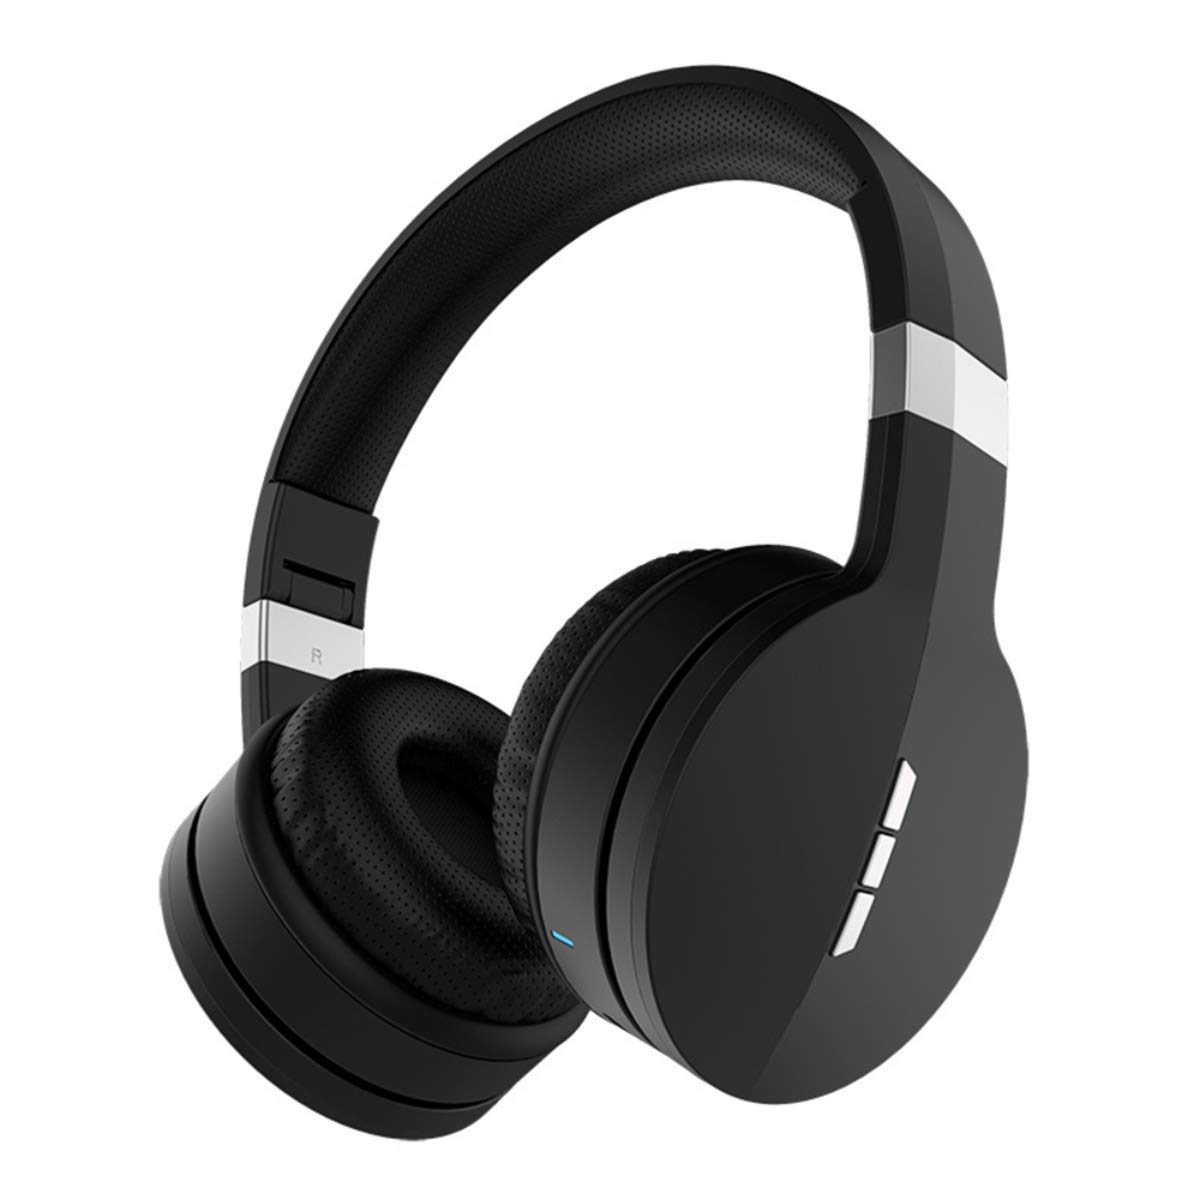 Bluetooth 5.0 Headphones,Over Ear Hi-Fi Stereo Wireless Headset, Foldable, Soft Memory-Protein Earmuffs, 45Hours Playing time,Built-in Mic and Wired Mode for PC/Cell Phones/TV (Black)